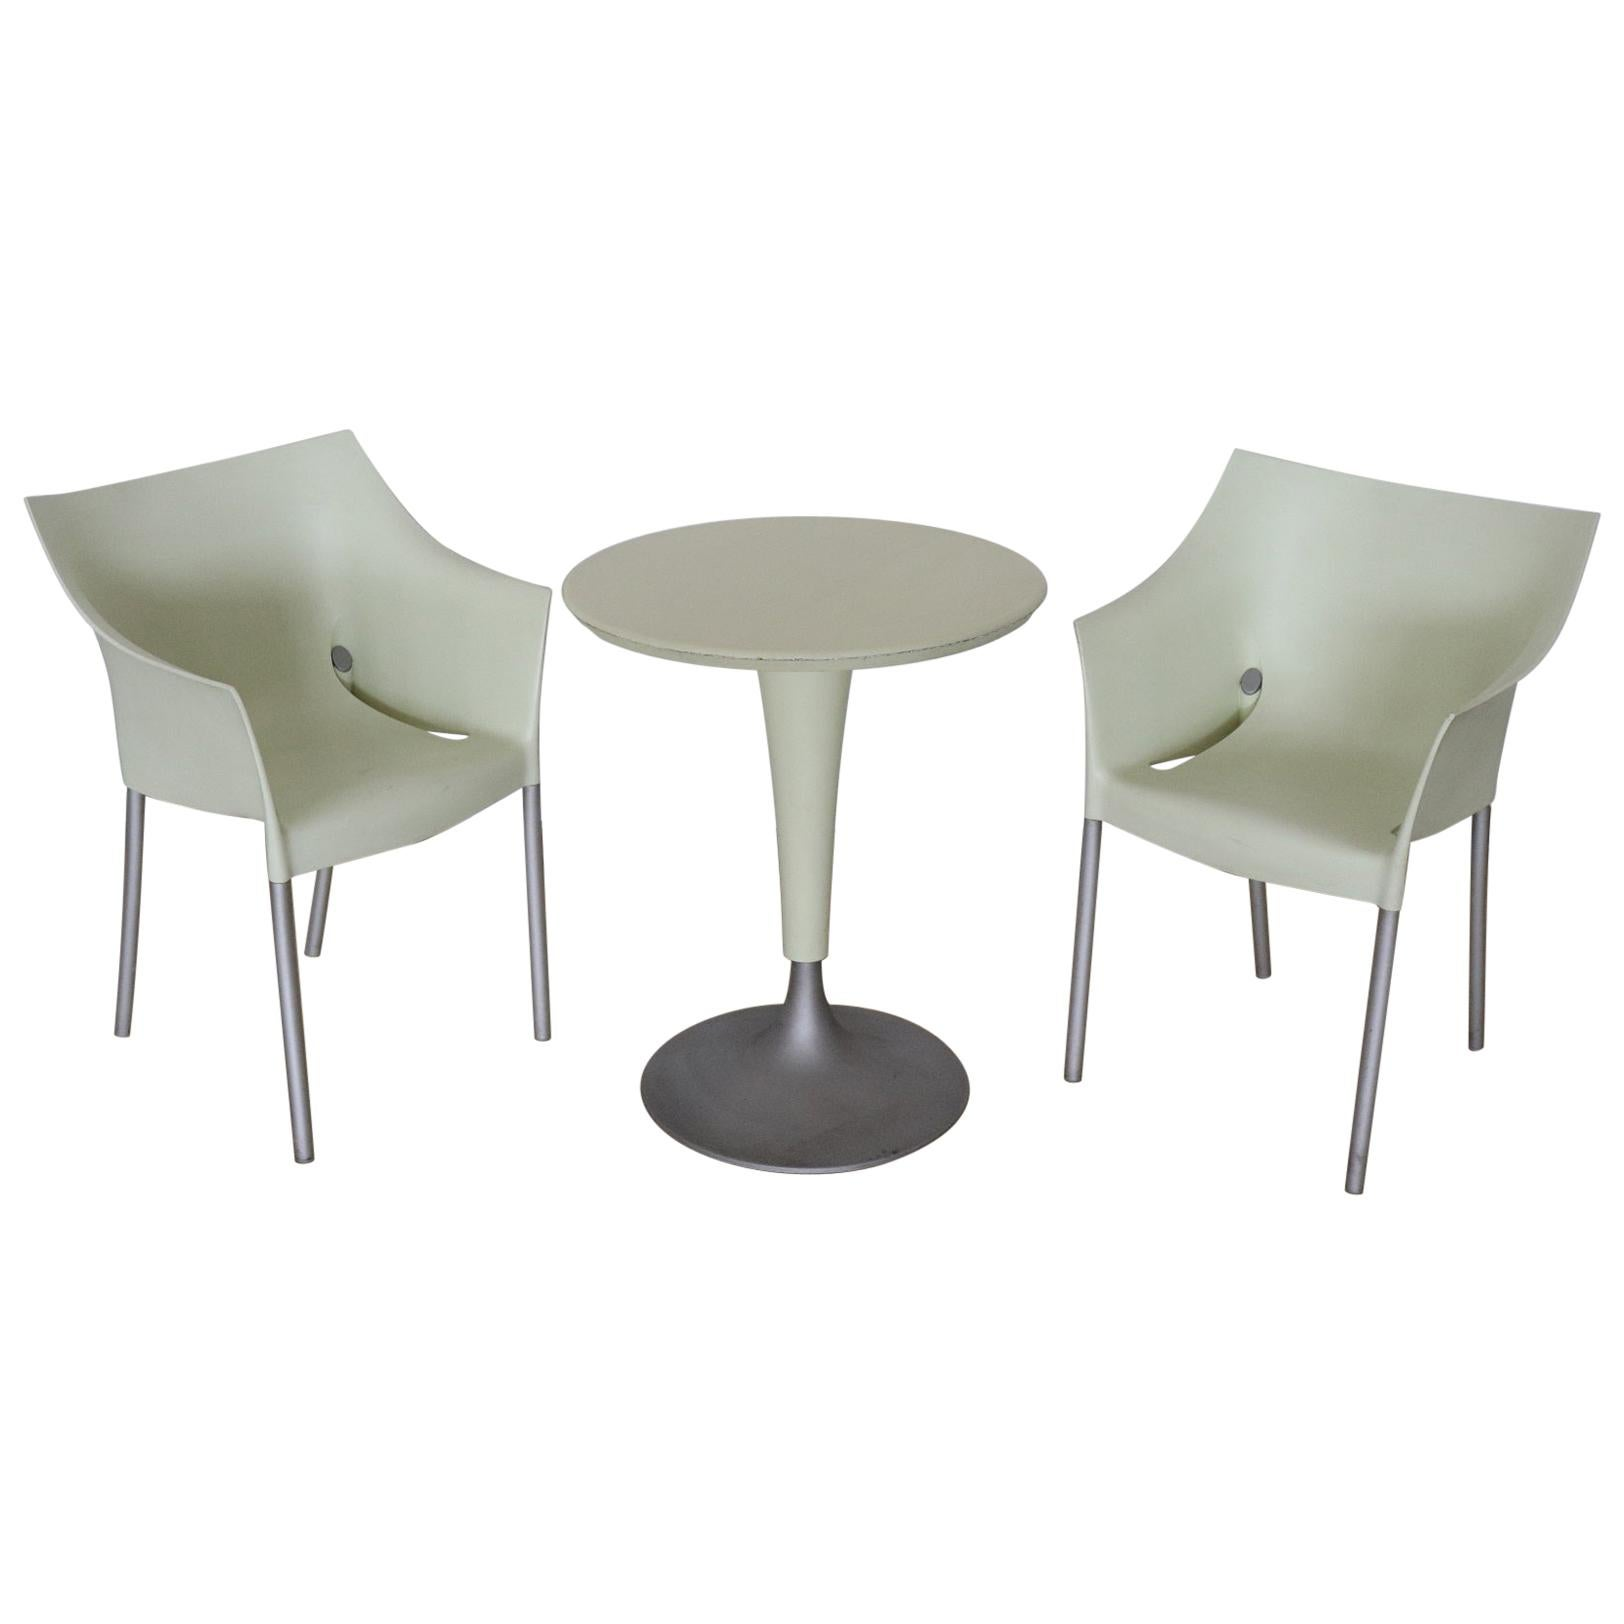 20th Century Design Table and Chairs by Philippe Starck for Kartell, 1990s